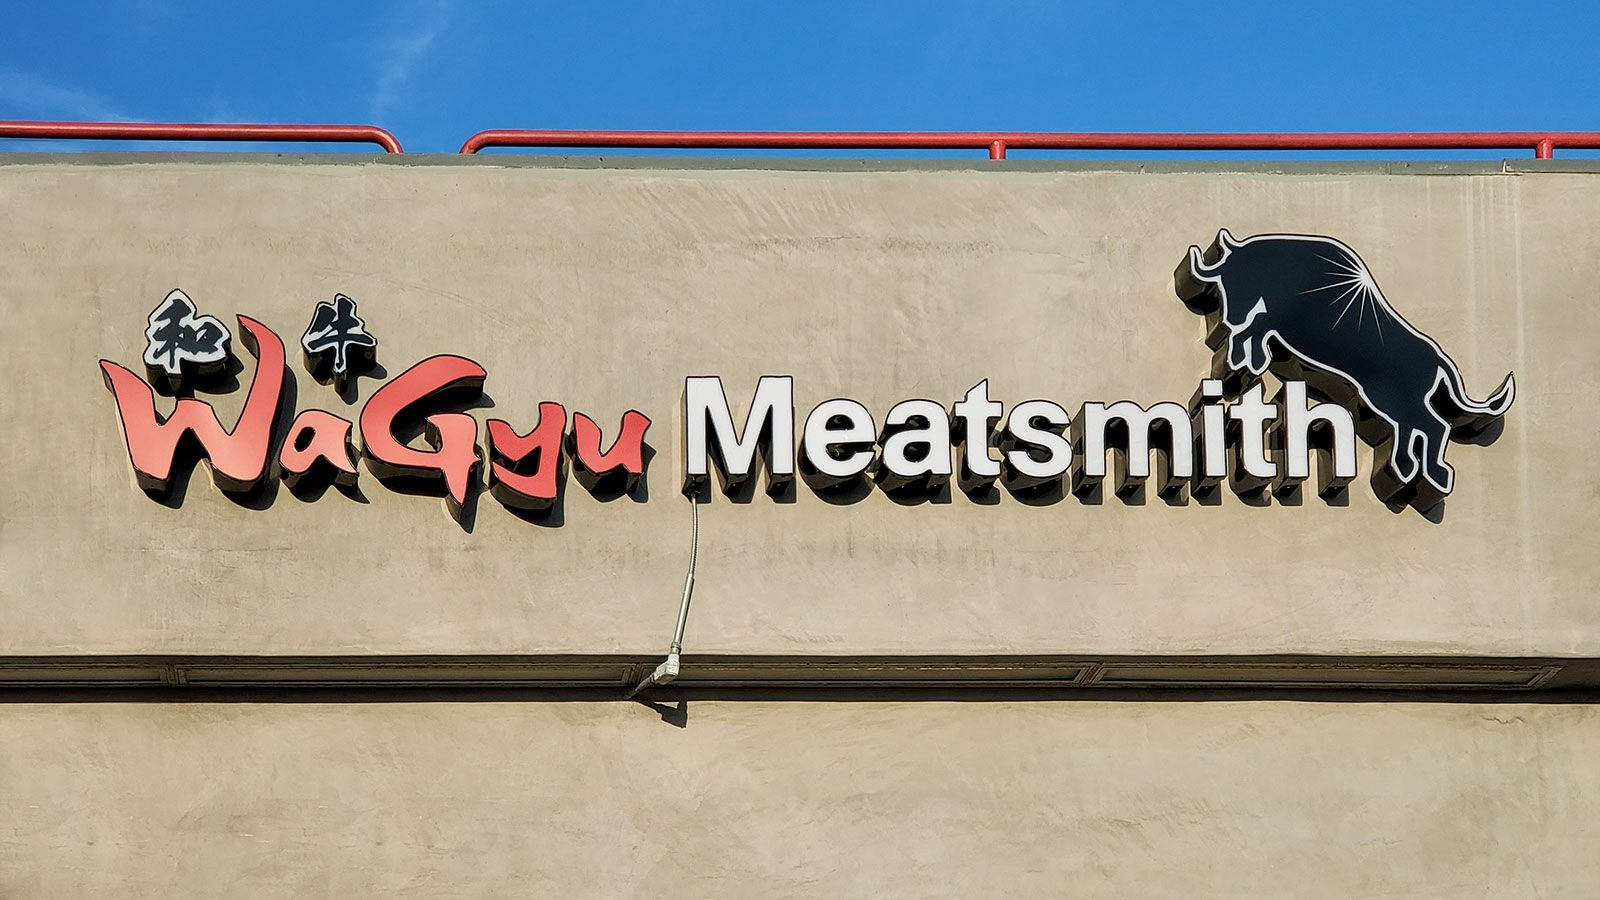 Wagyu meatsmith building sign